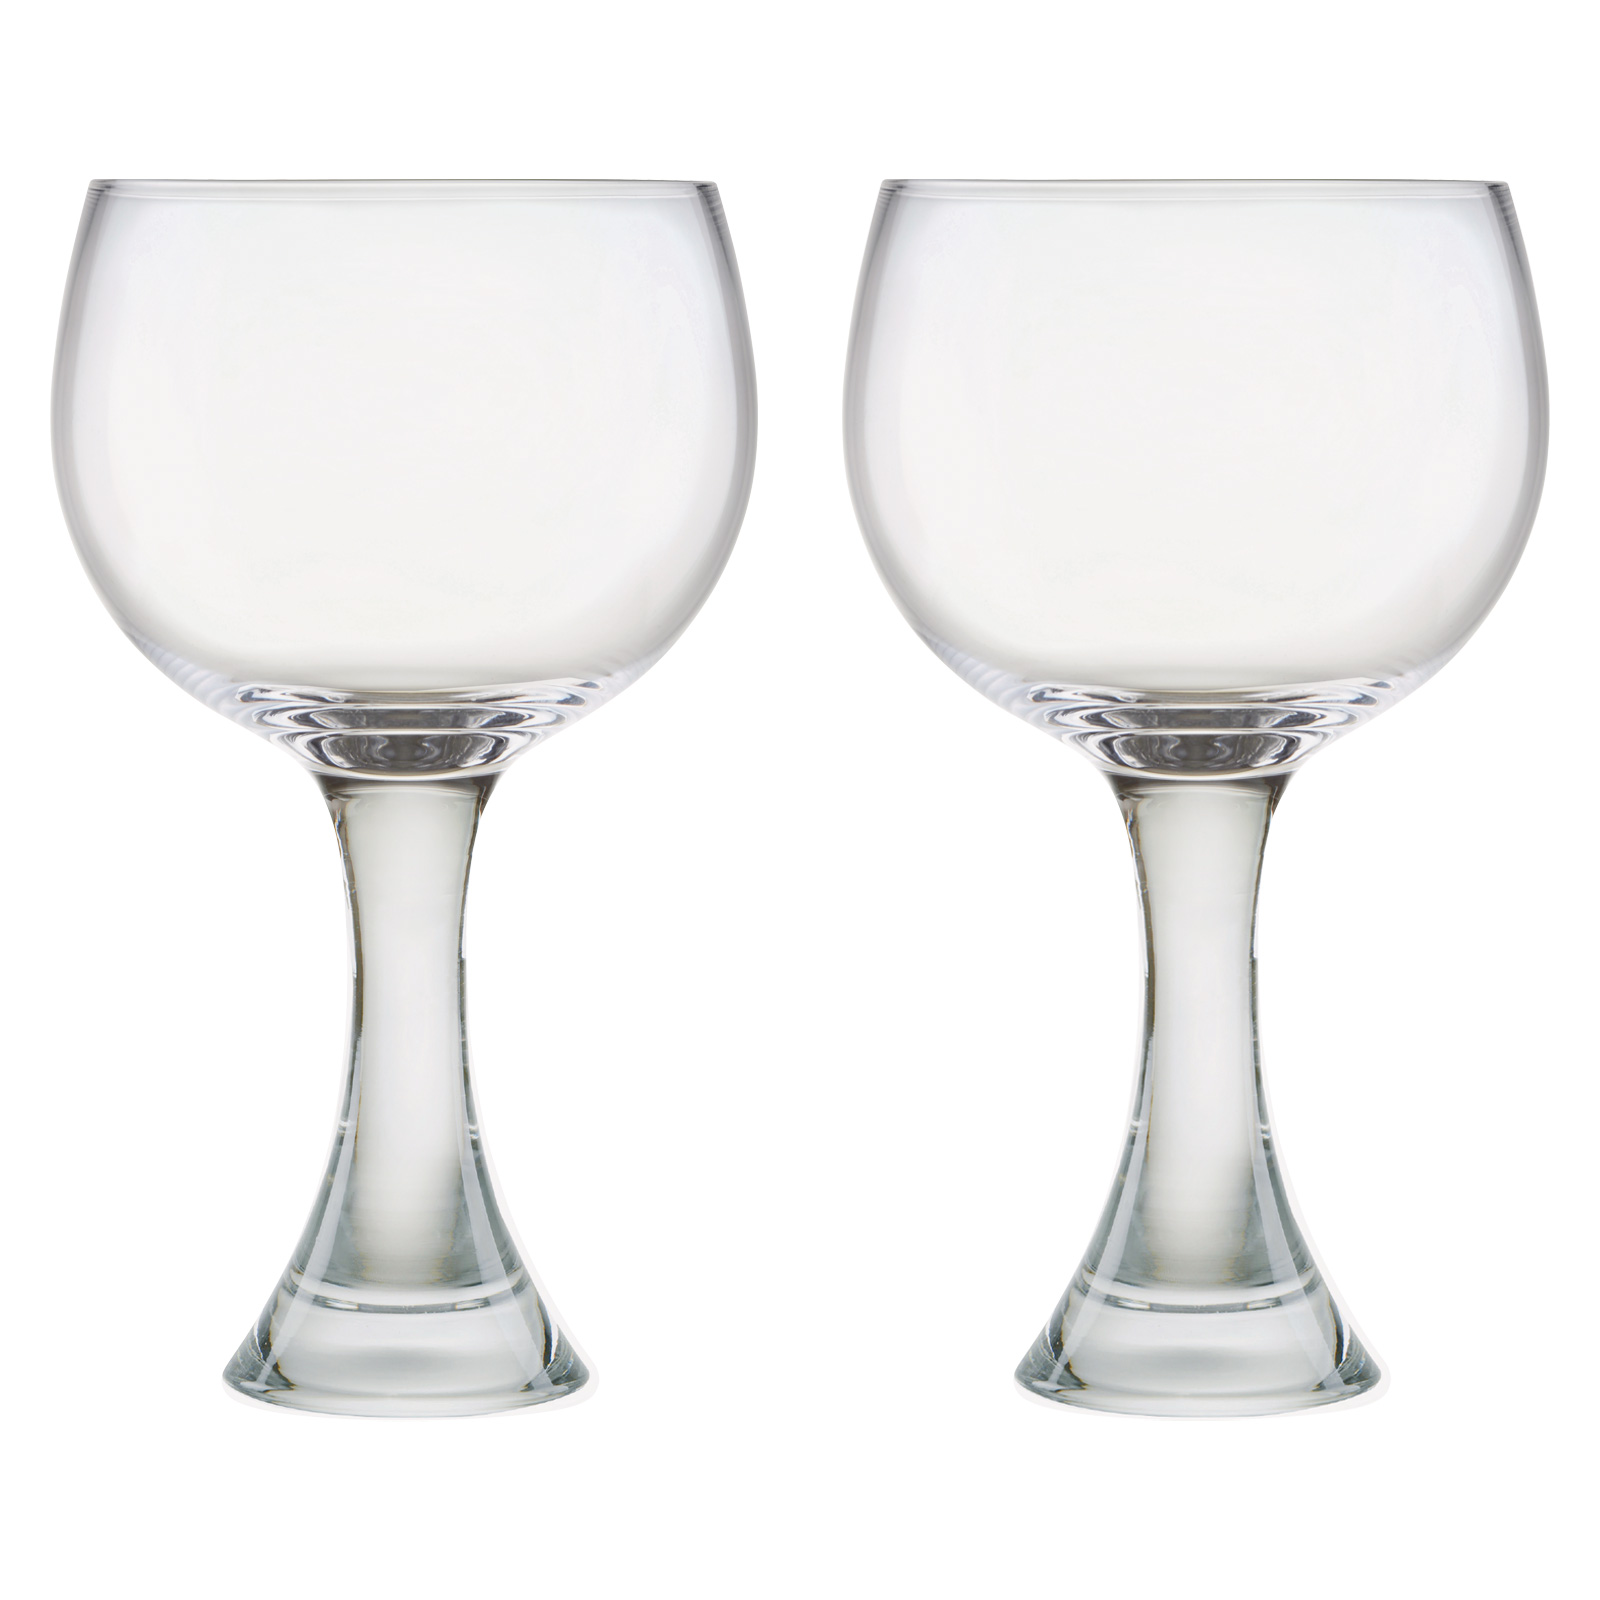 Set of 2 Manhattan Gin Glasses